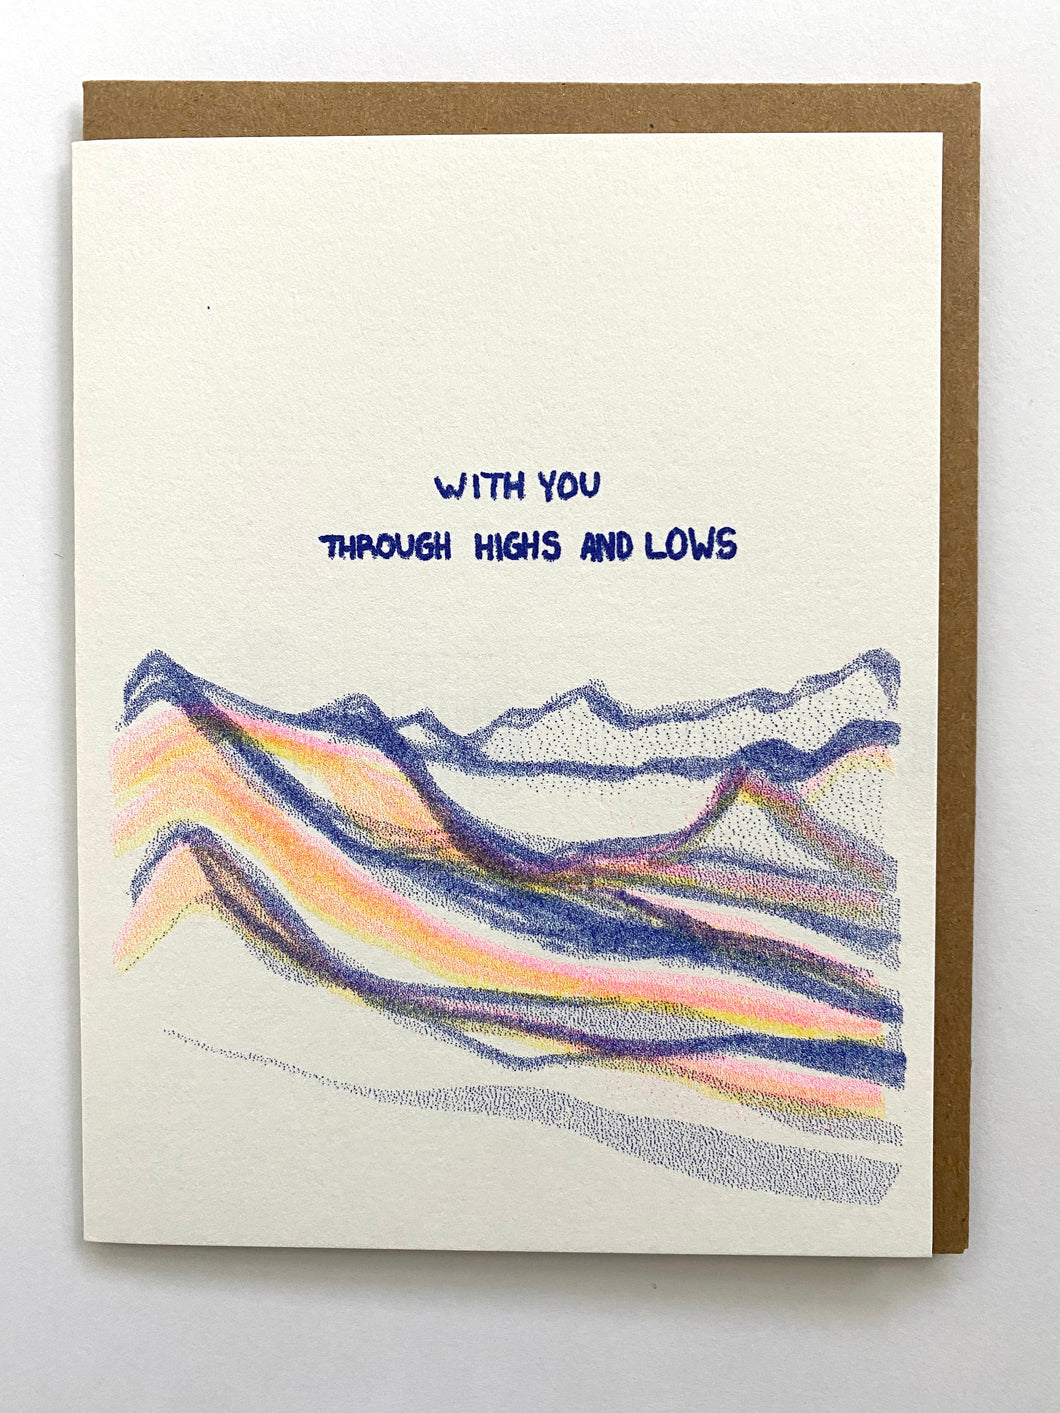 Highs and Lows Mountain Card